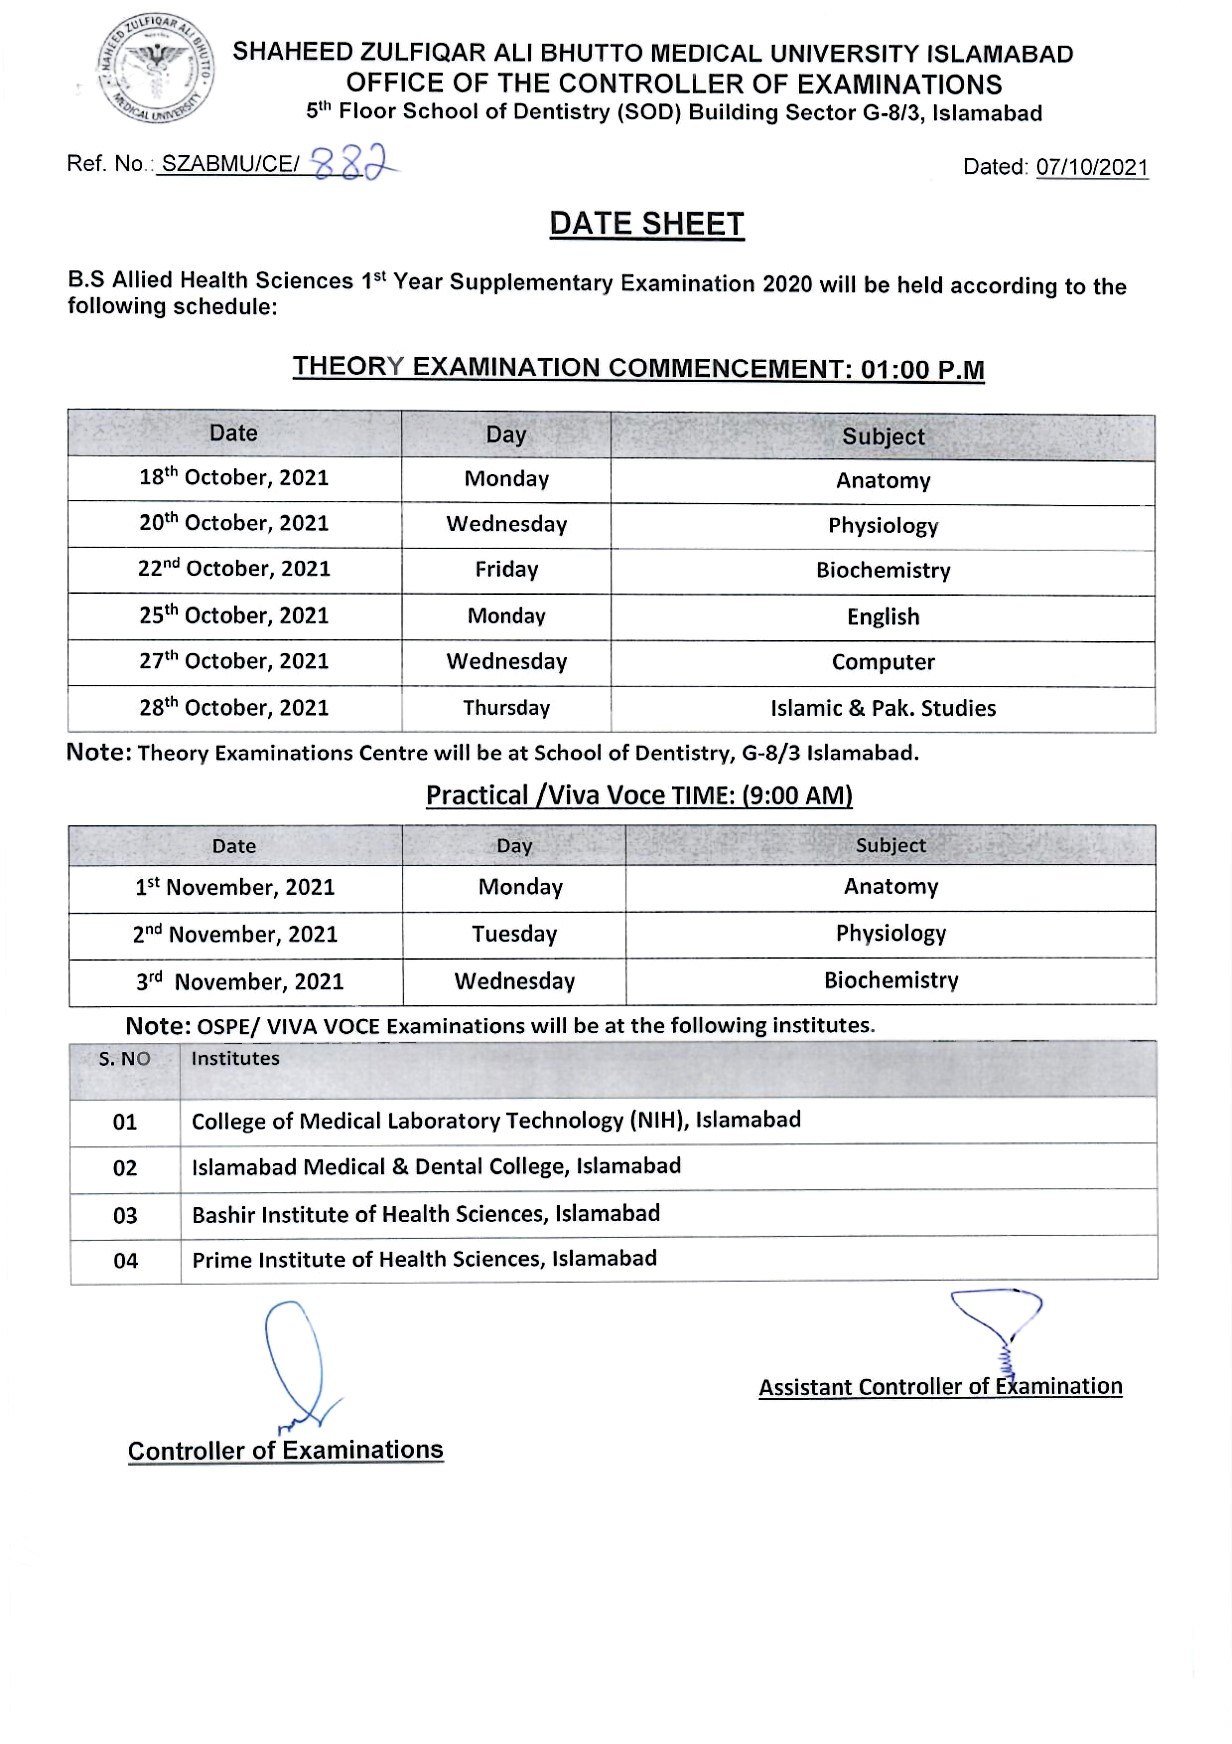 Date Sheet - B.S AHS 1st and 3rd Year Supplementary Examinations 2020